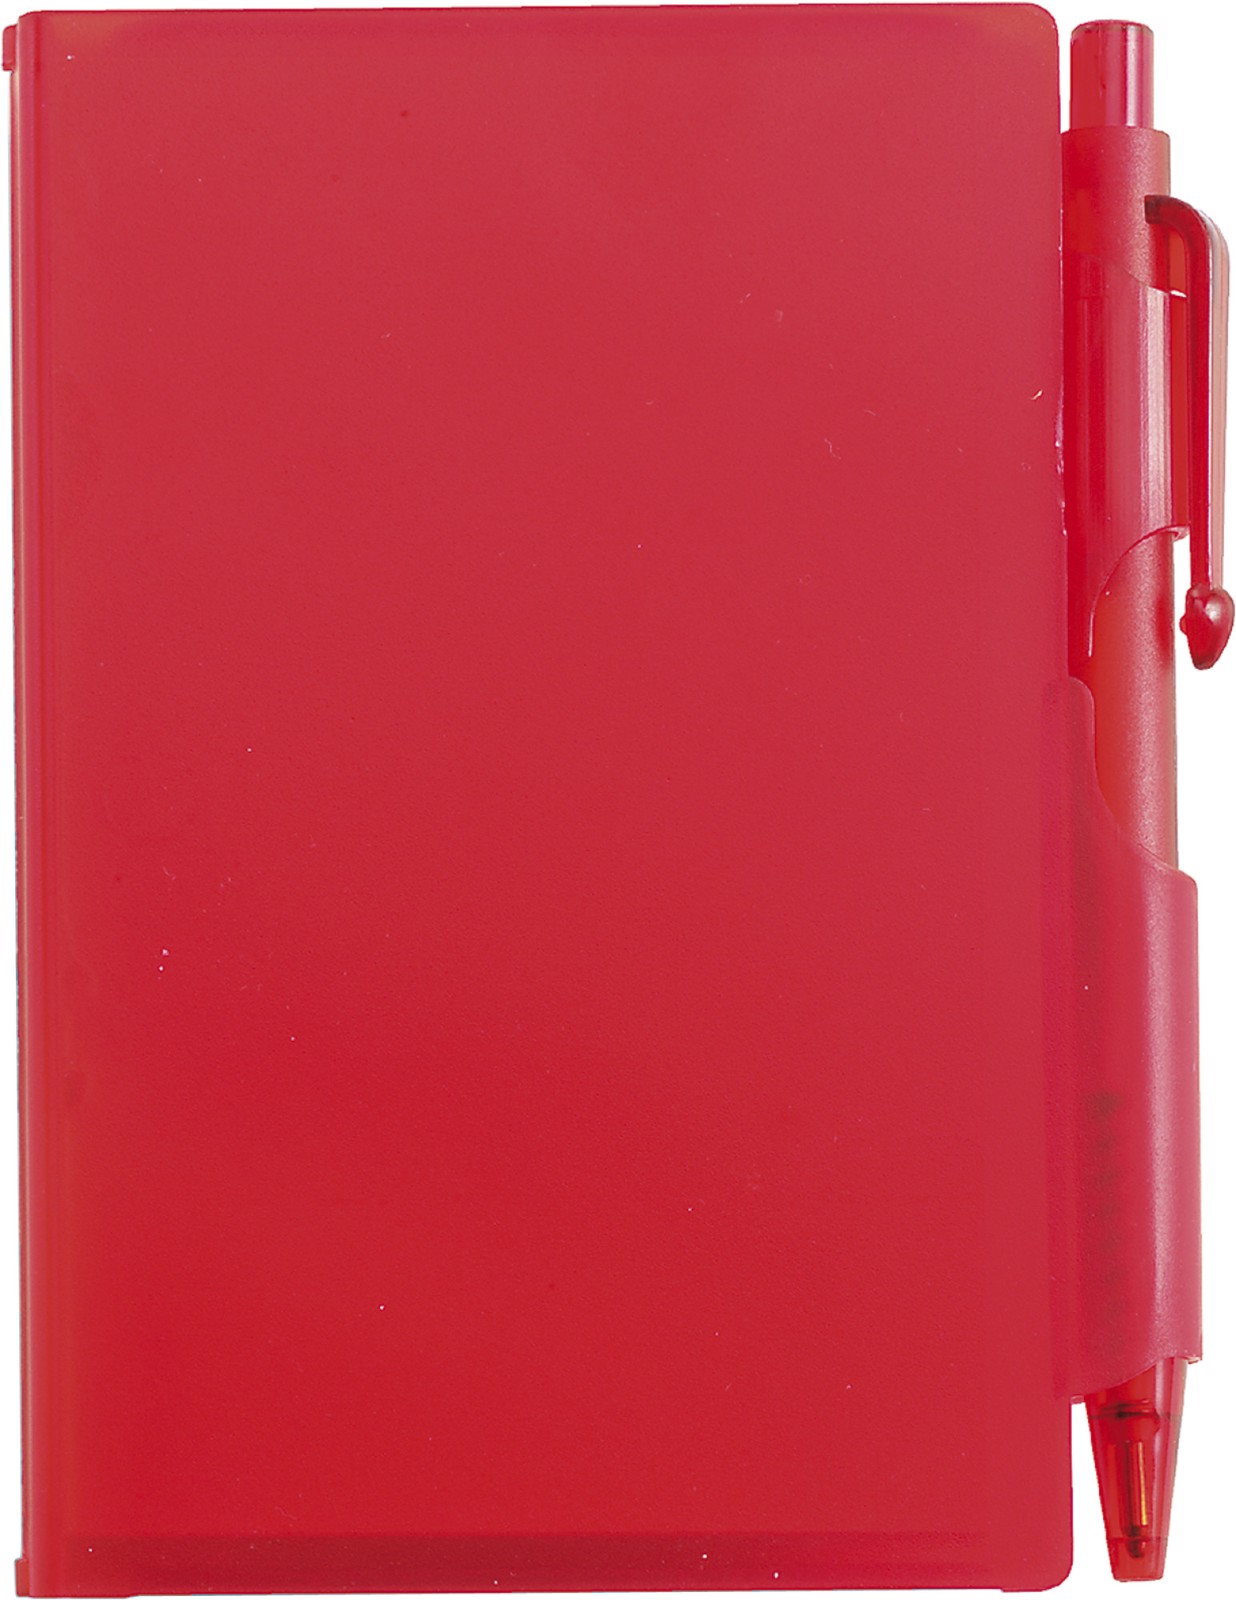 ABS notebook with pen - Red